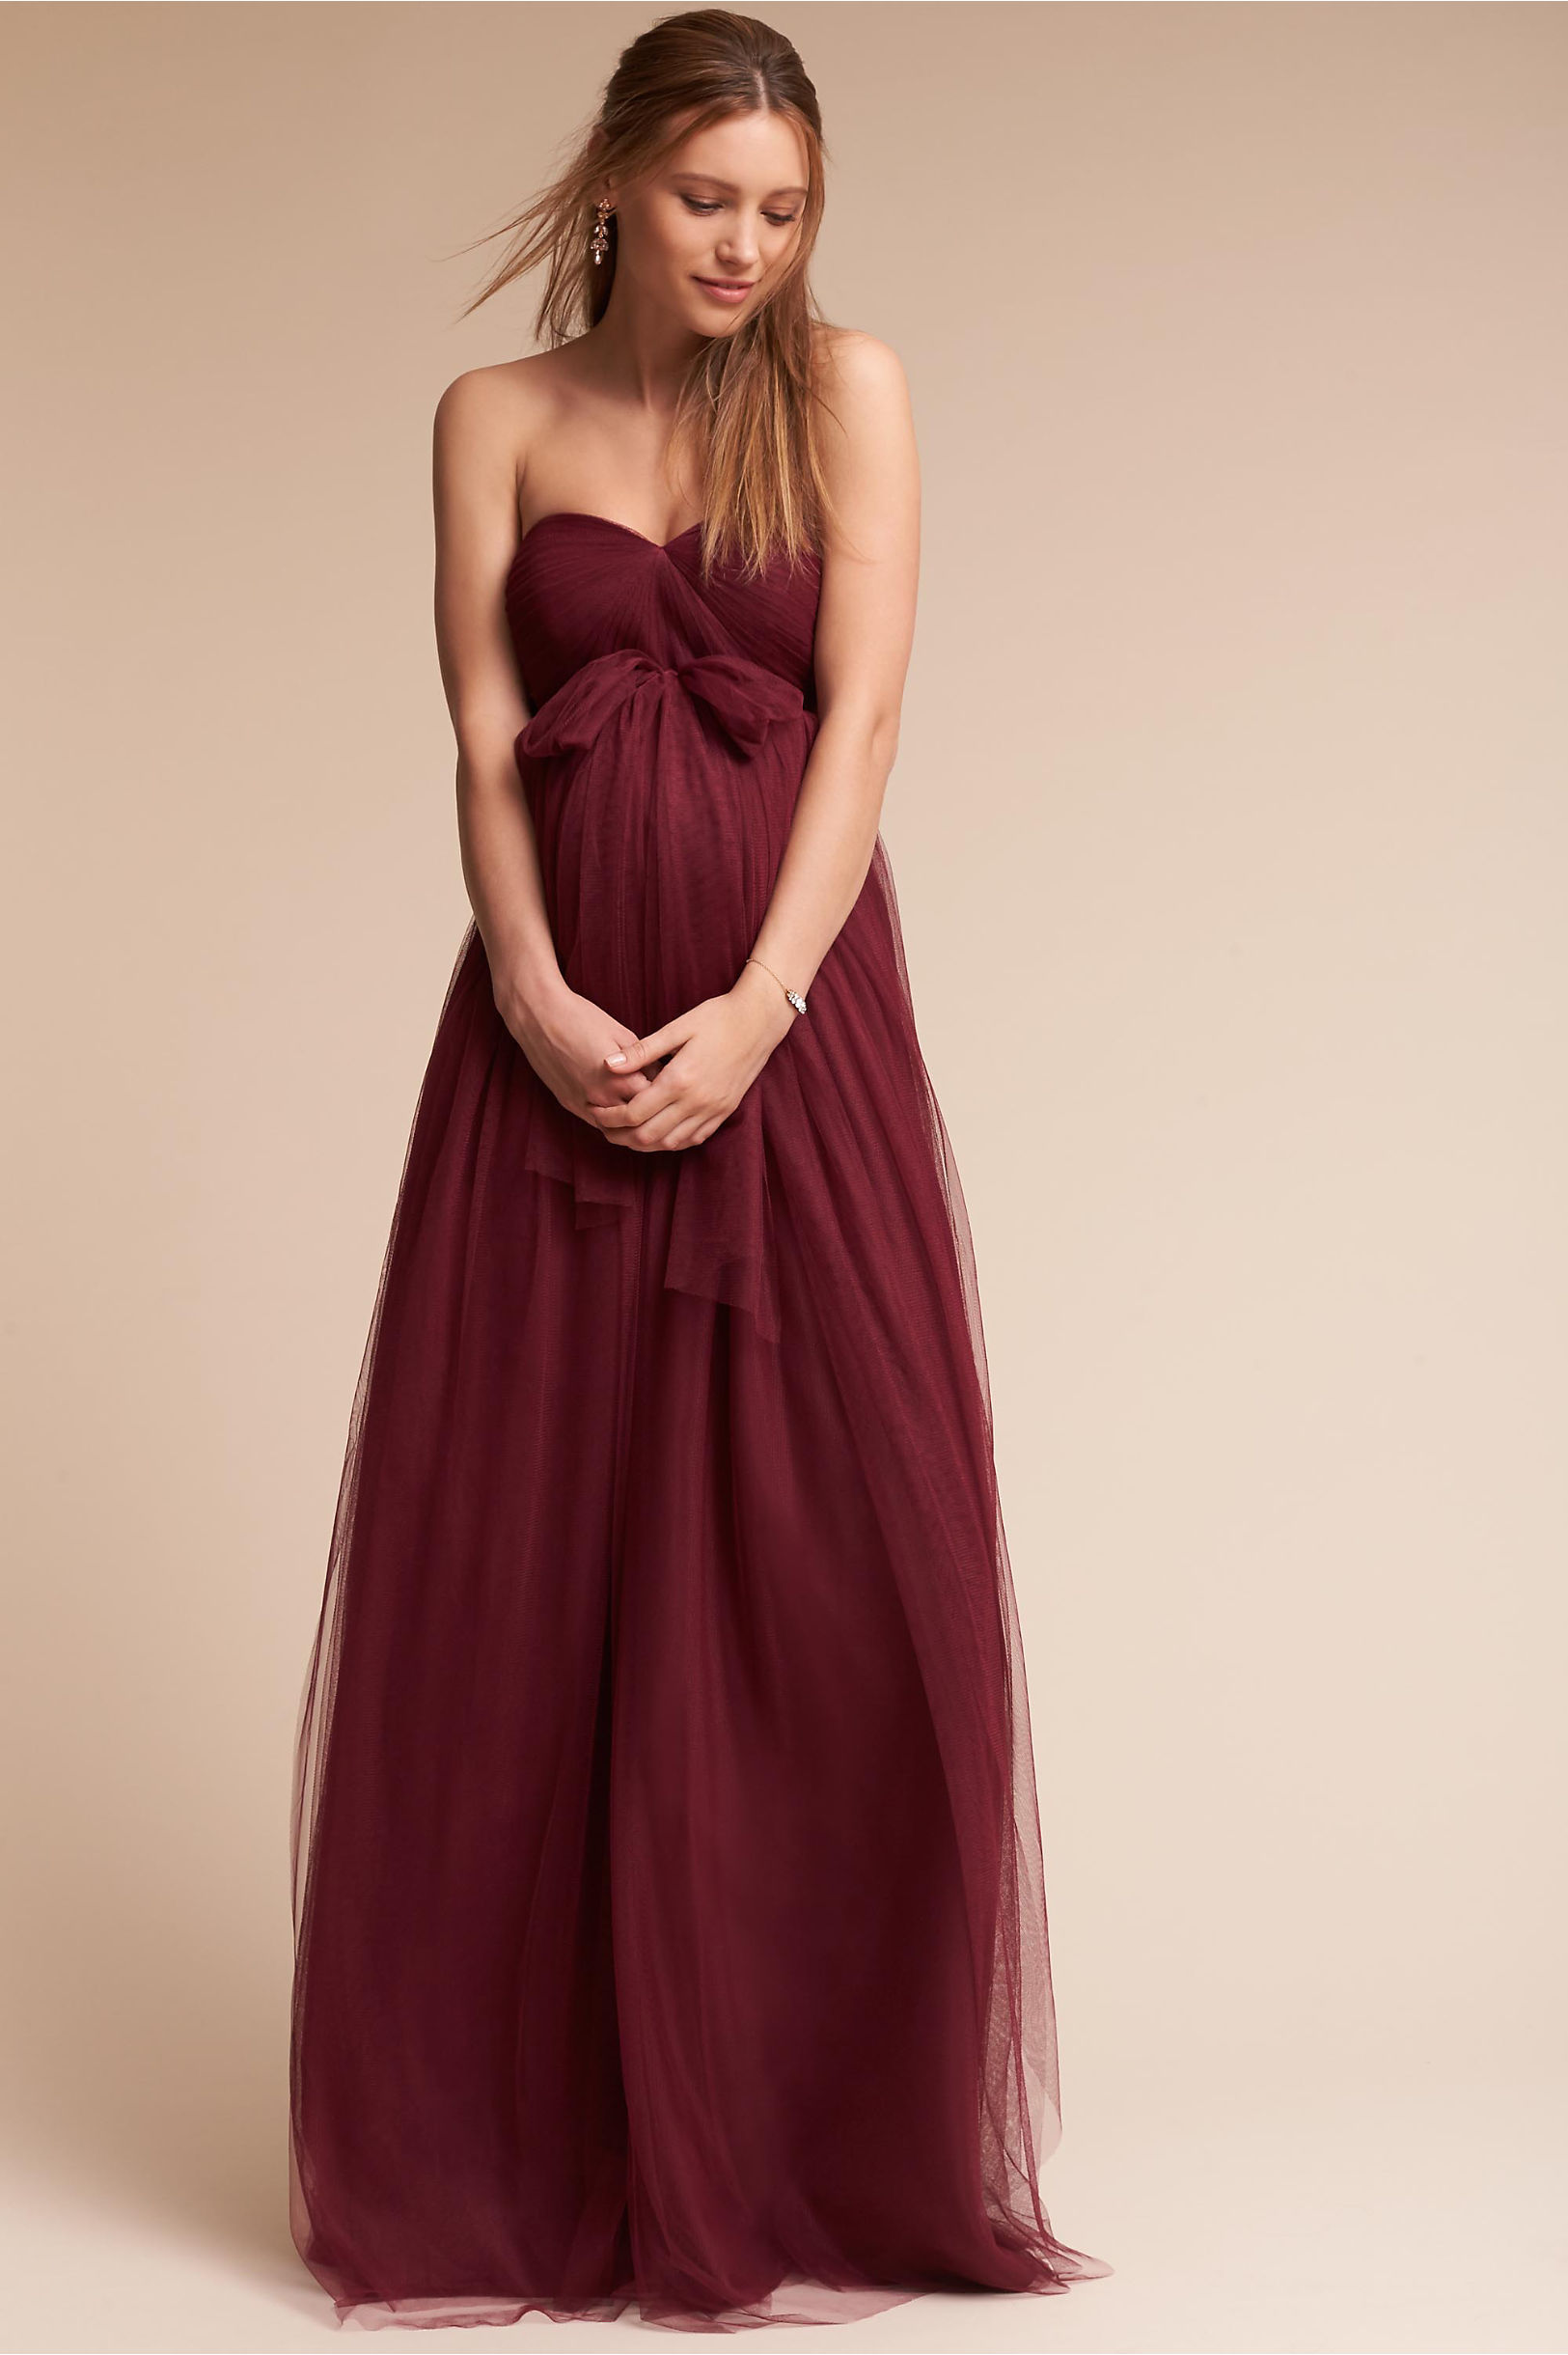 Serafina Maternity Dress Black Cherry in Sale | BHLDN